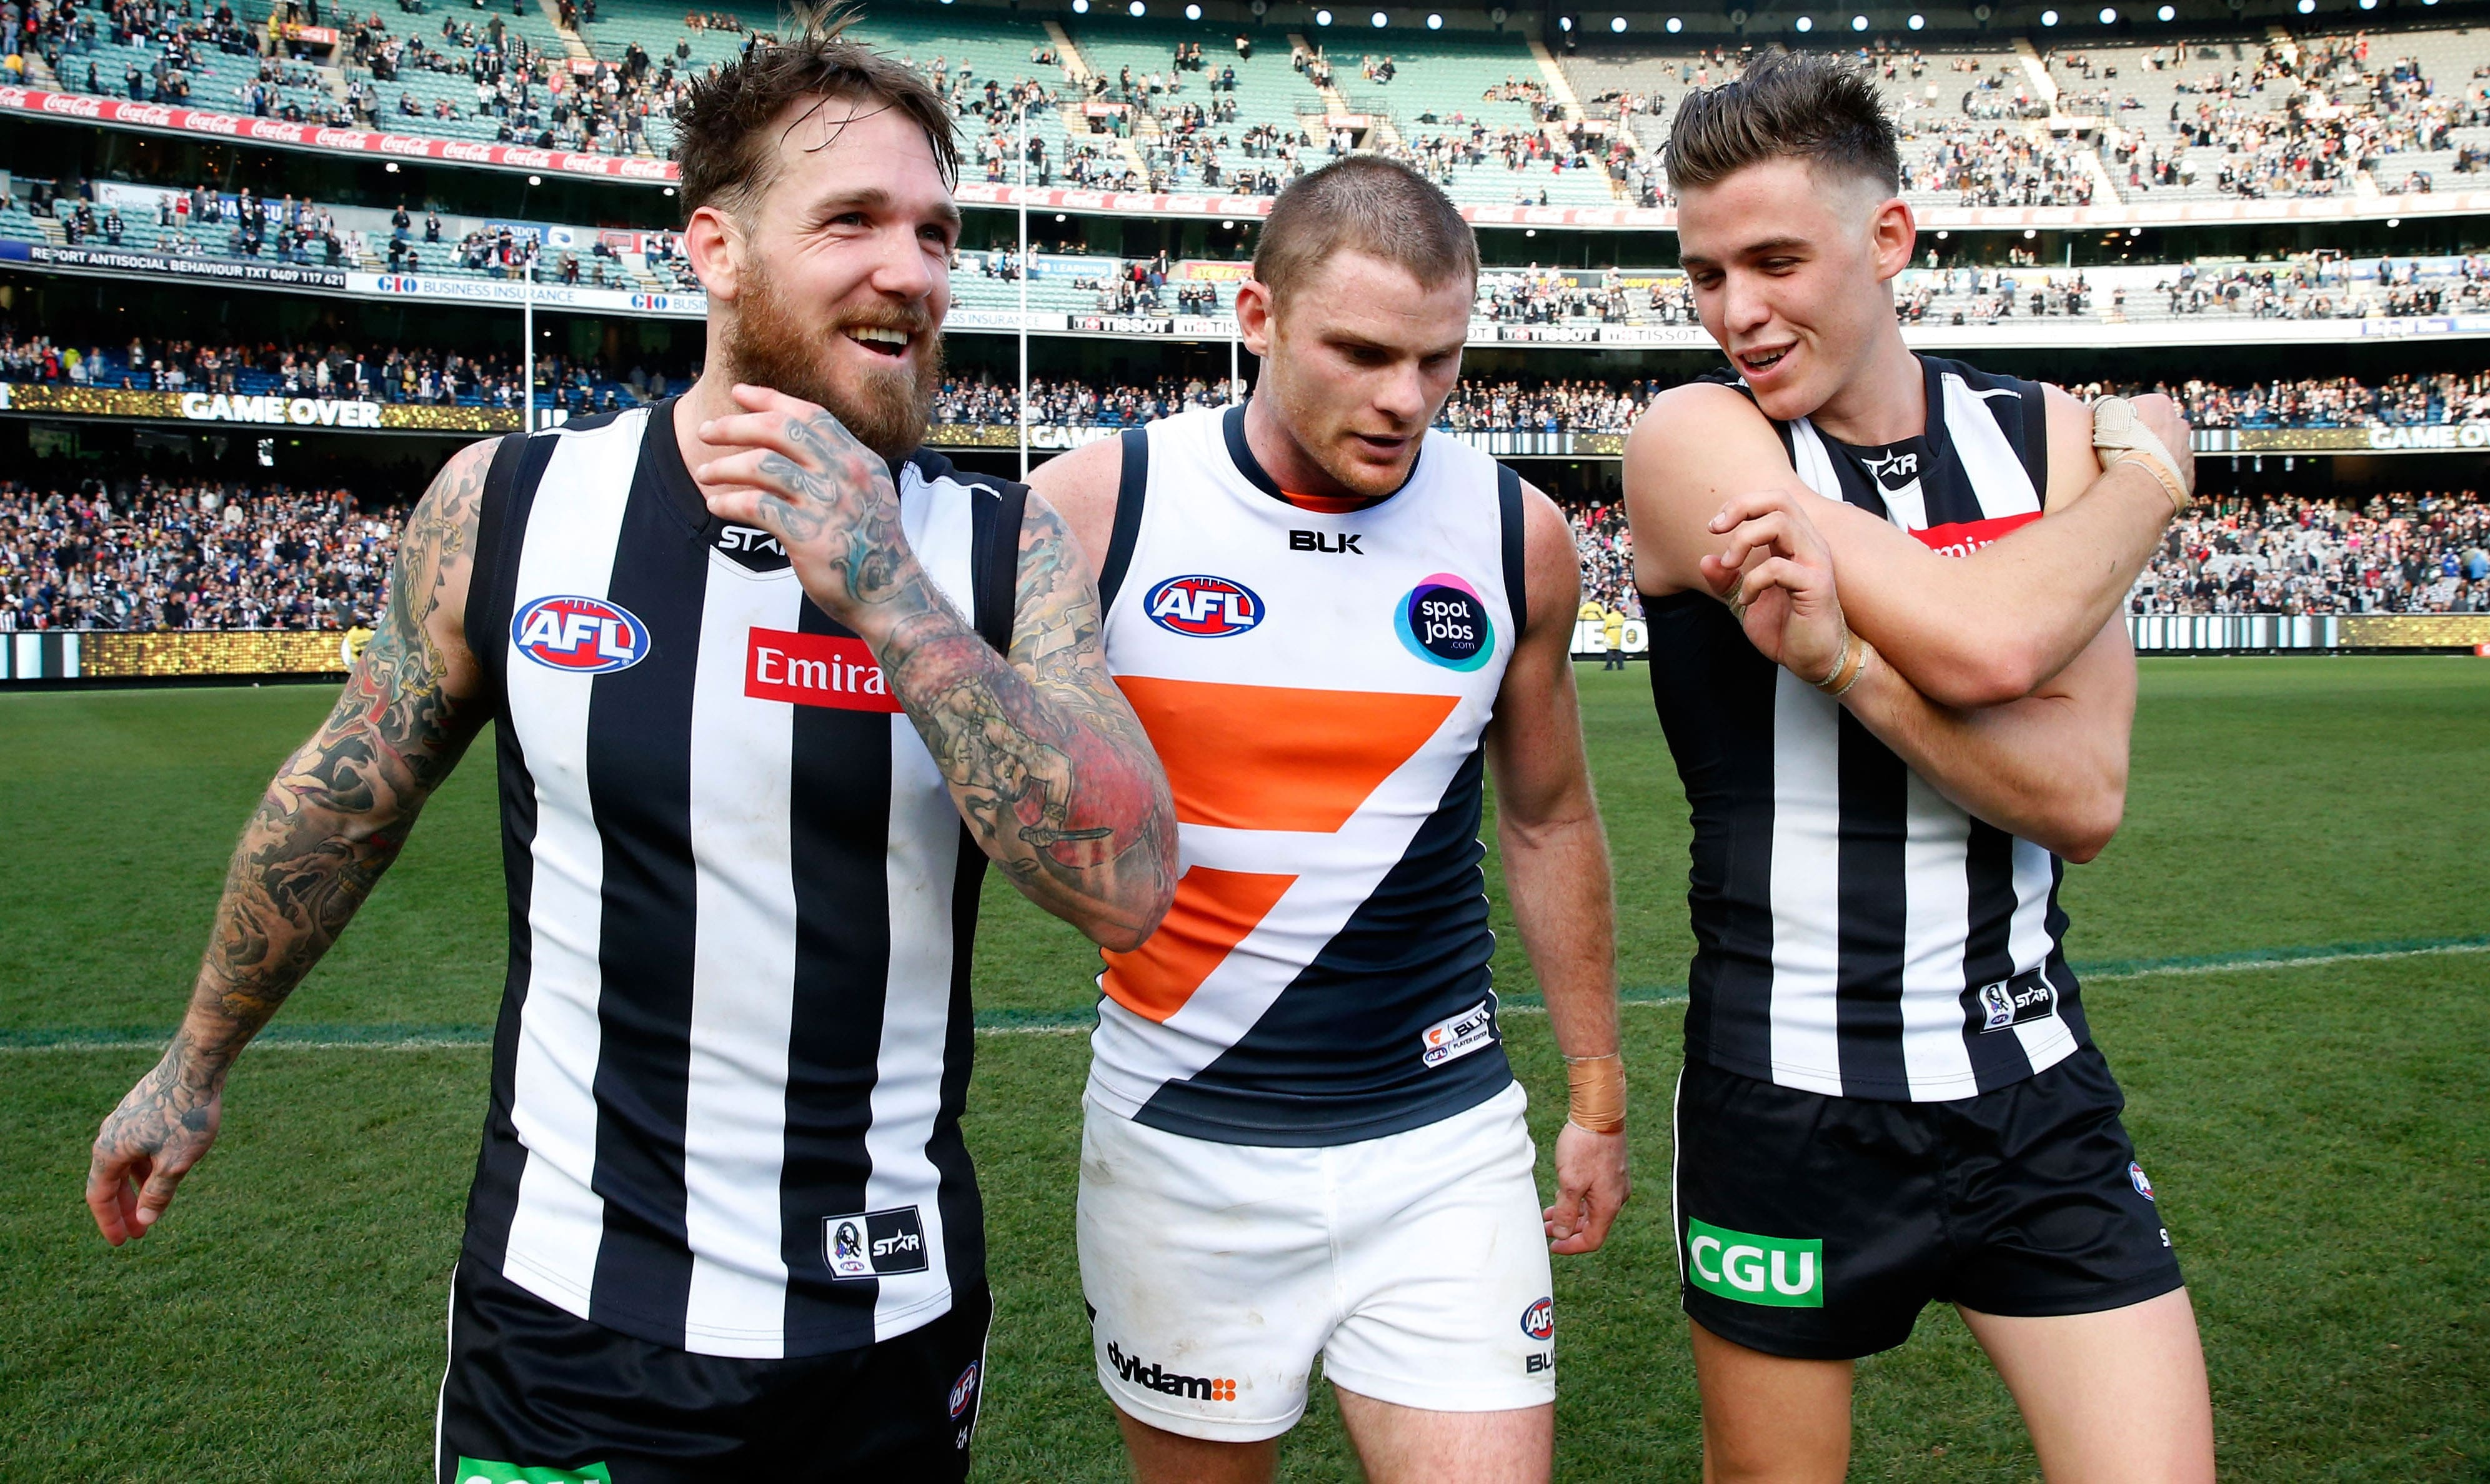 After the siren: Why not Collingwood?